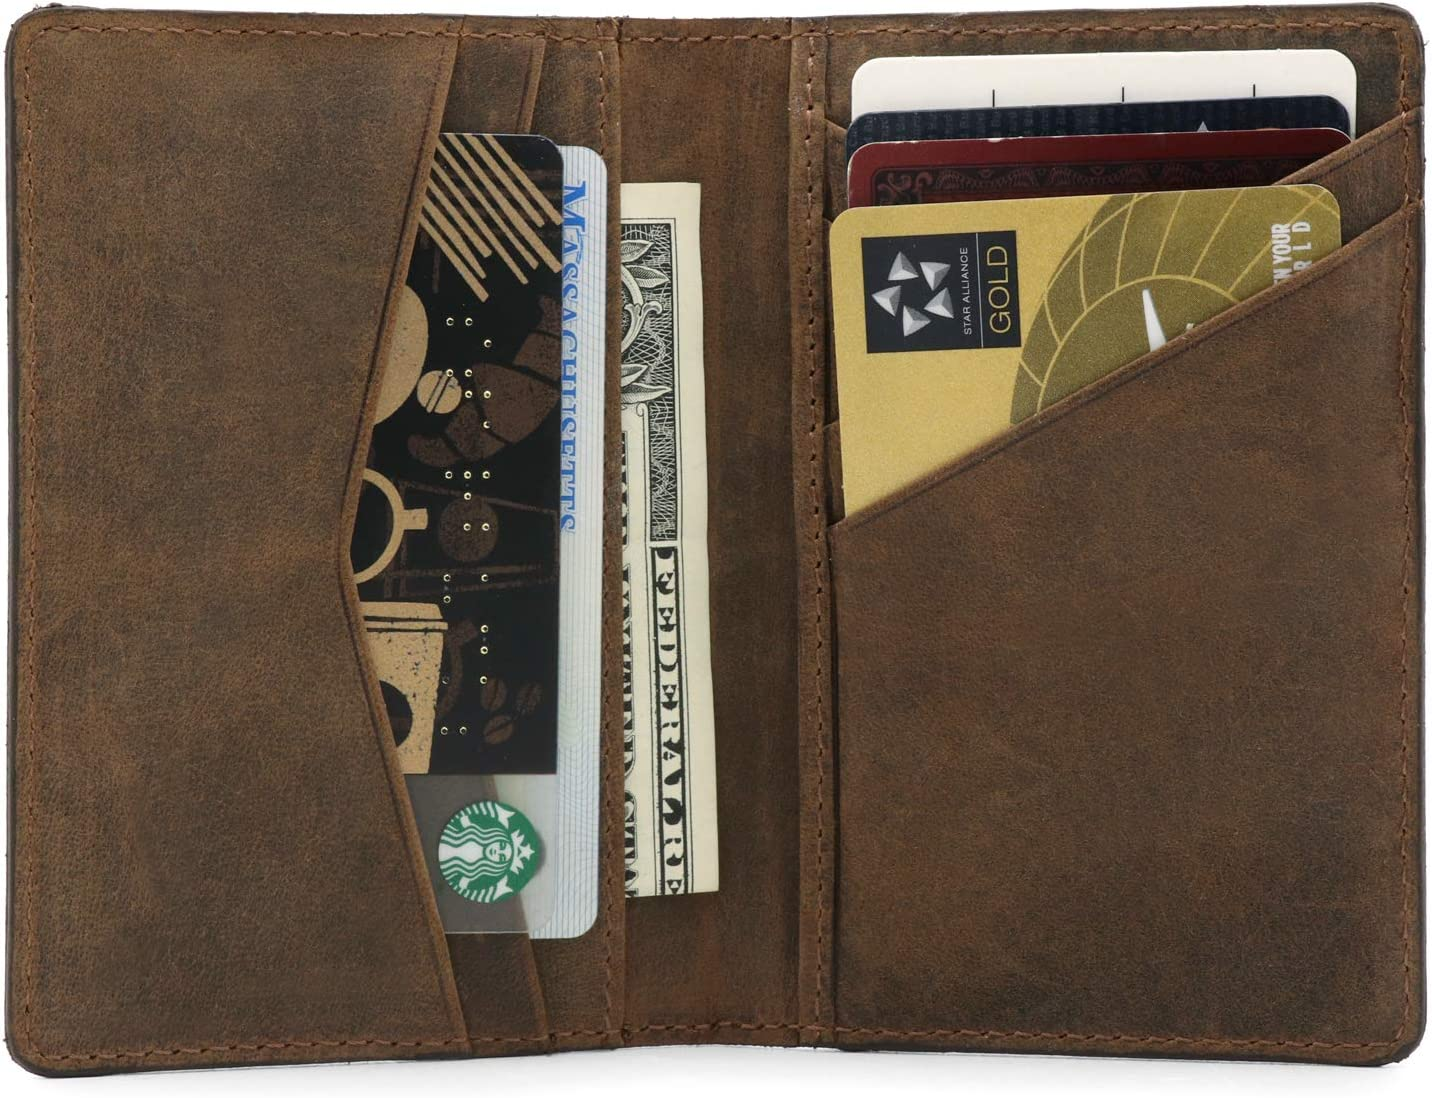 Otto Angelino Genuine Leather Bifold Card and Cash Wallet – Unisex